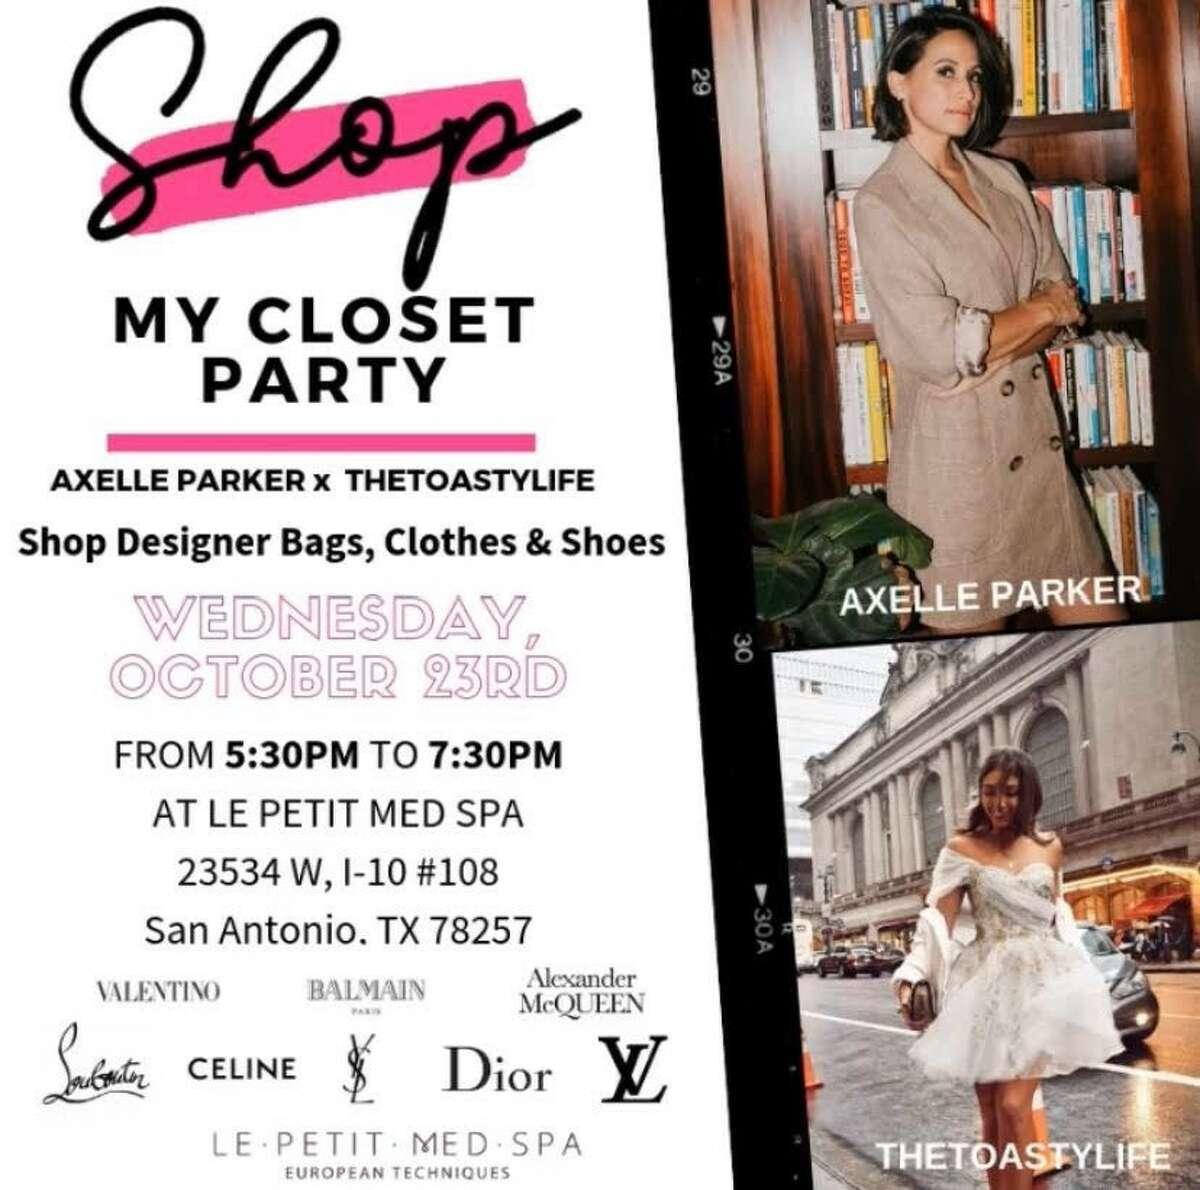 Axelle Francine-Parker is hosting a closet purge party at her Le Petit Med Spa. She launched the business earlier this year on the outskirts of town while husband Tony Parker played for the Charlotte Hornets after 17 seasons with the Spurs. The Oct. 23 shopping event will include a